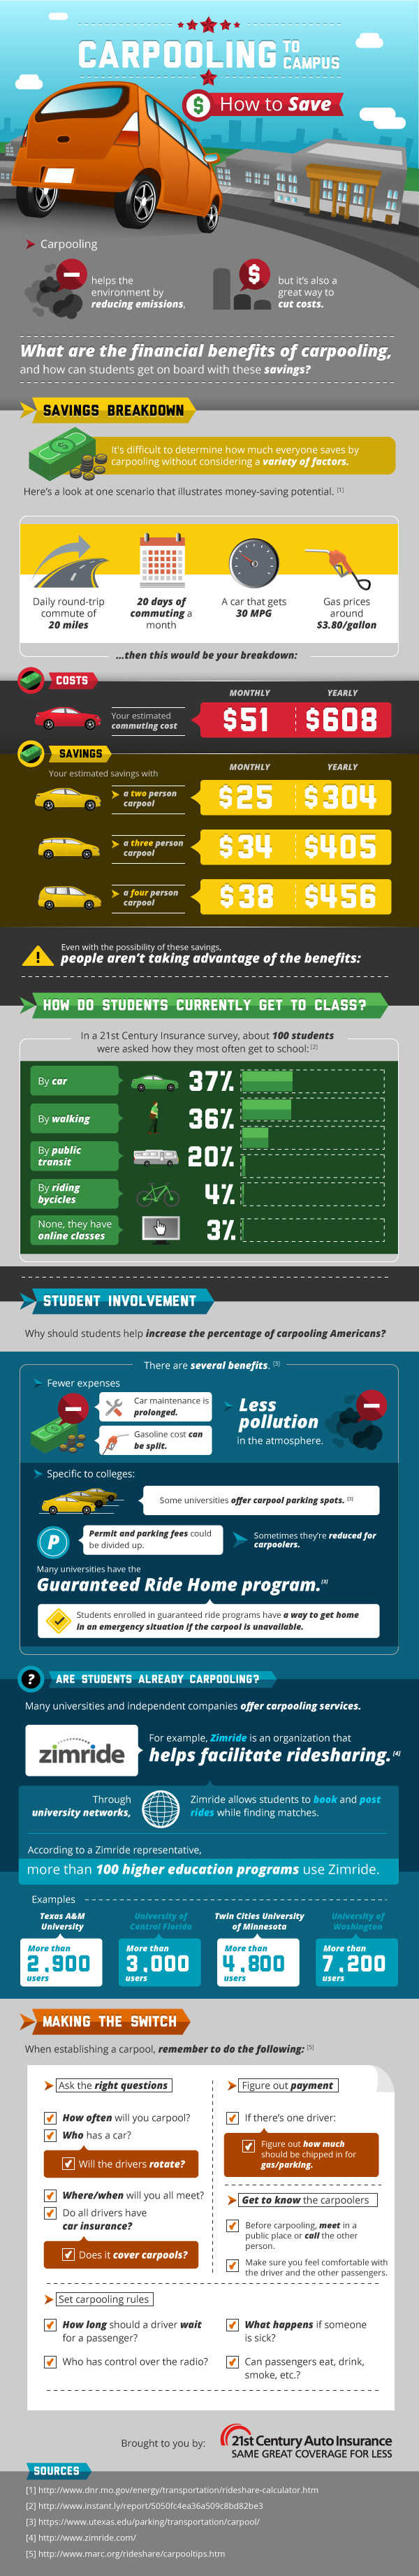 carpooling to campus infographic